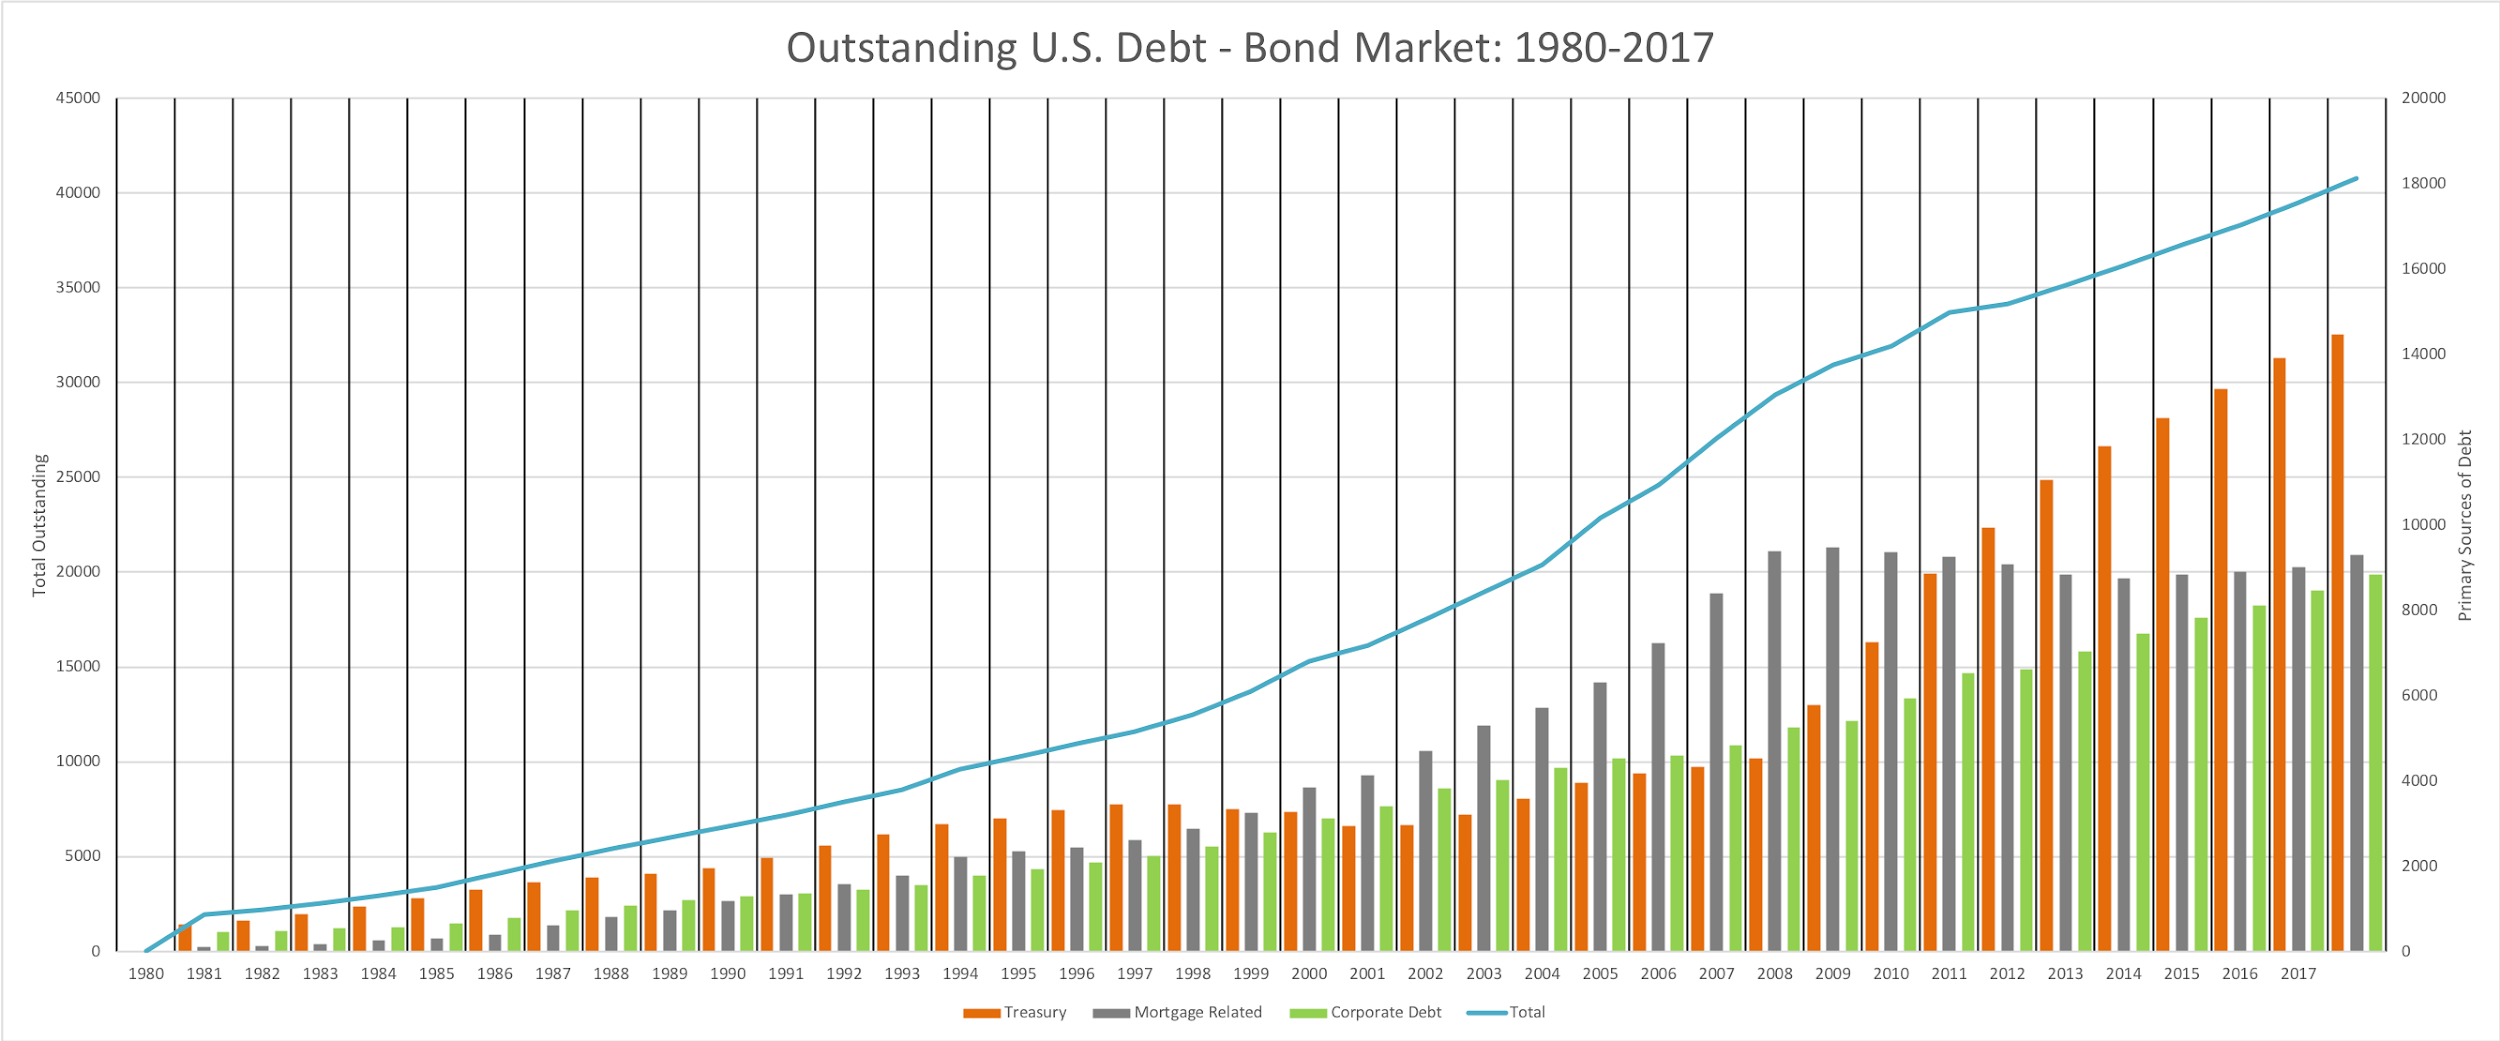 Outstanding U.S. Debt - Bond Market: 1980 - 2017 (Author's Work using Data from  Securities Industry and Financial Markets Association )